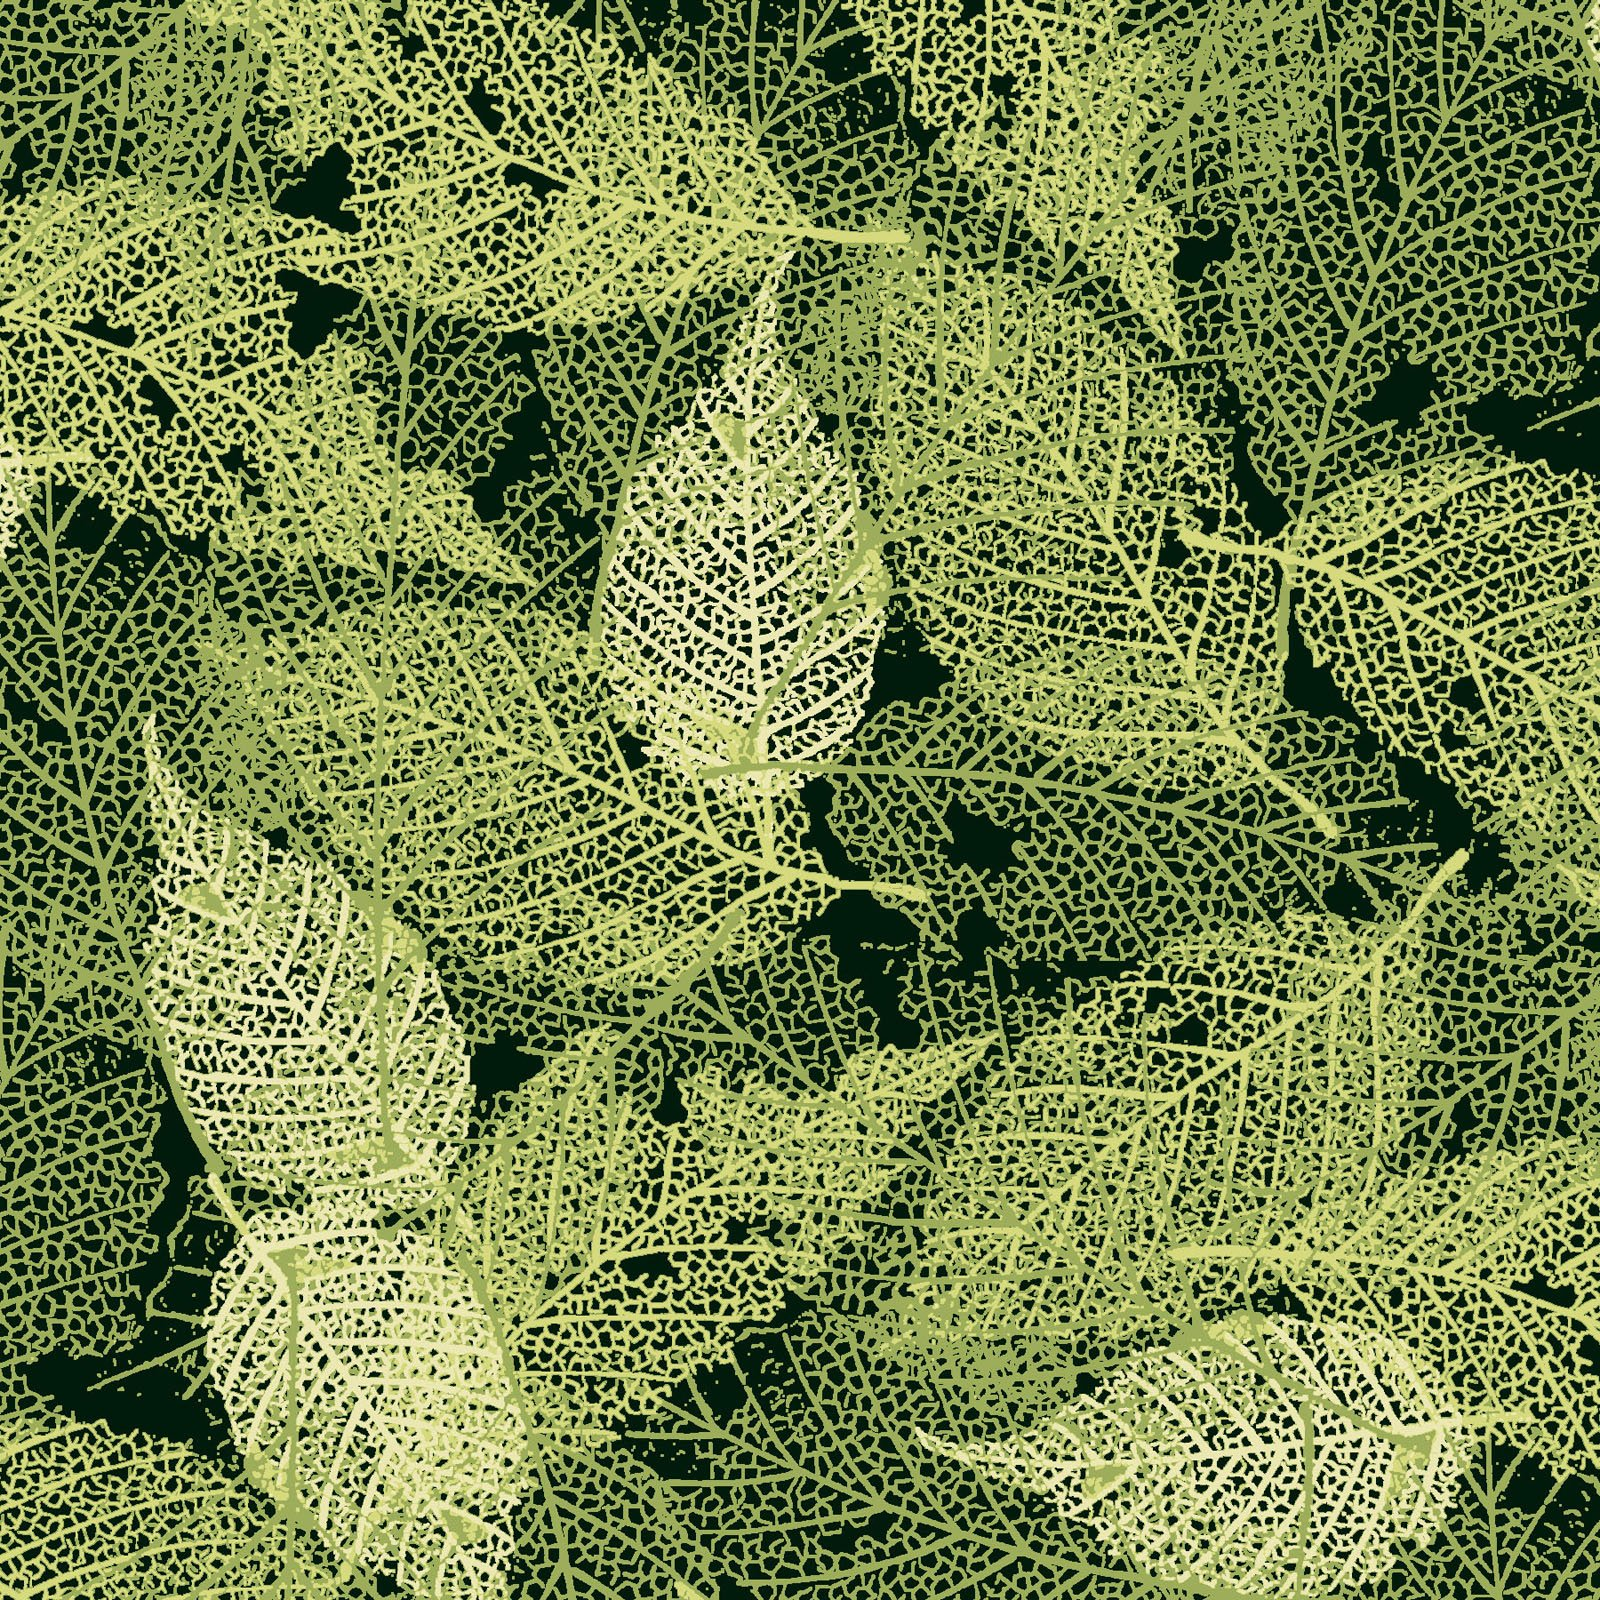 FOLI-4478 G  - FOLIAGE BY P&B BOUTIQUE TEXTURE LEAVES GREEN - ARRIVING IN MAY 2021